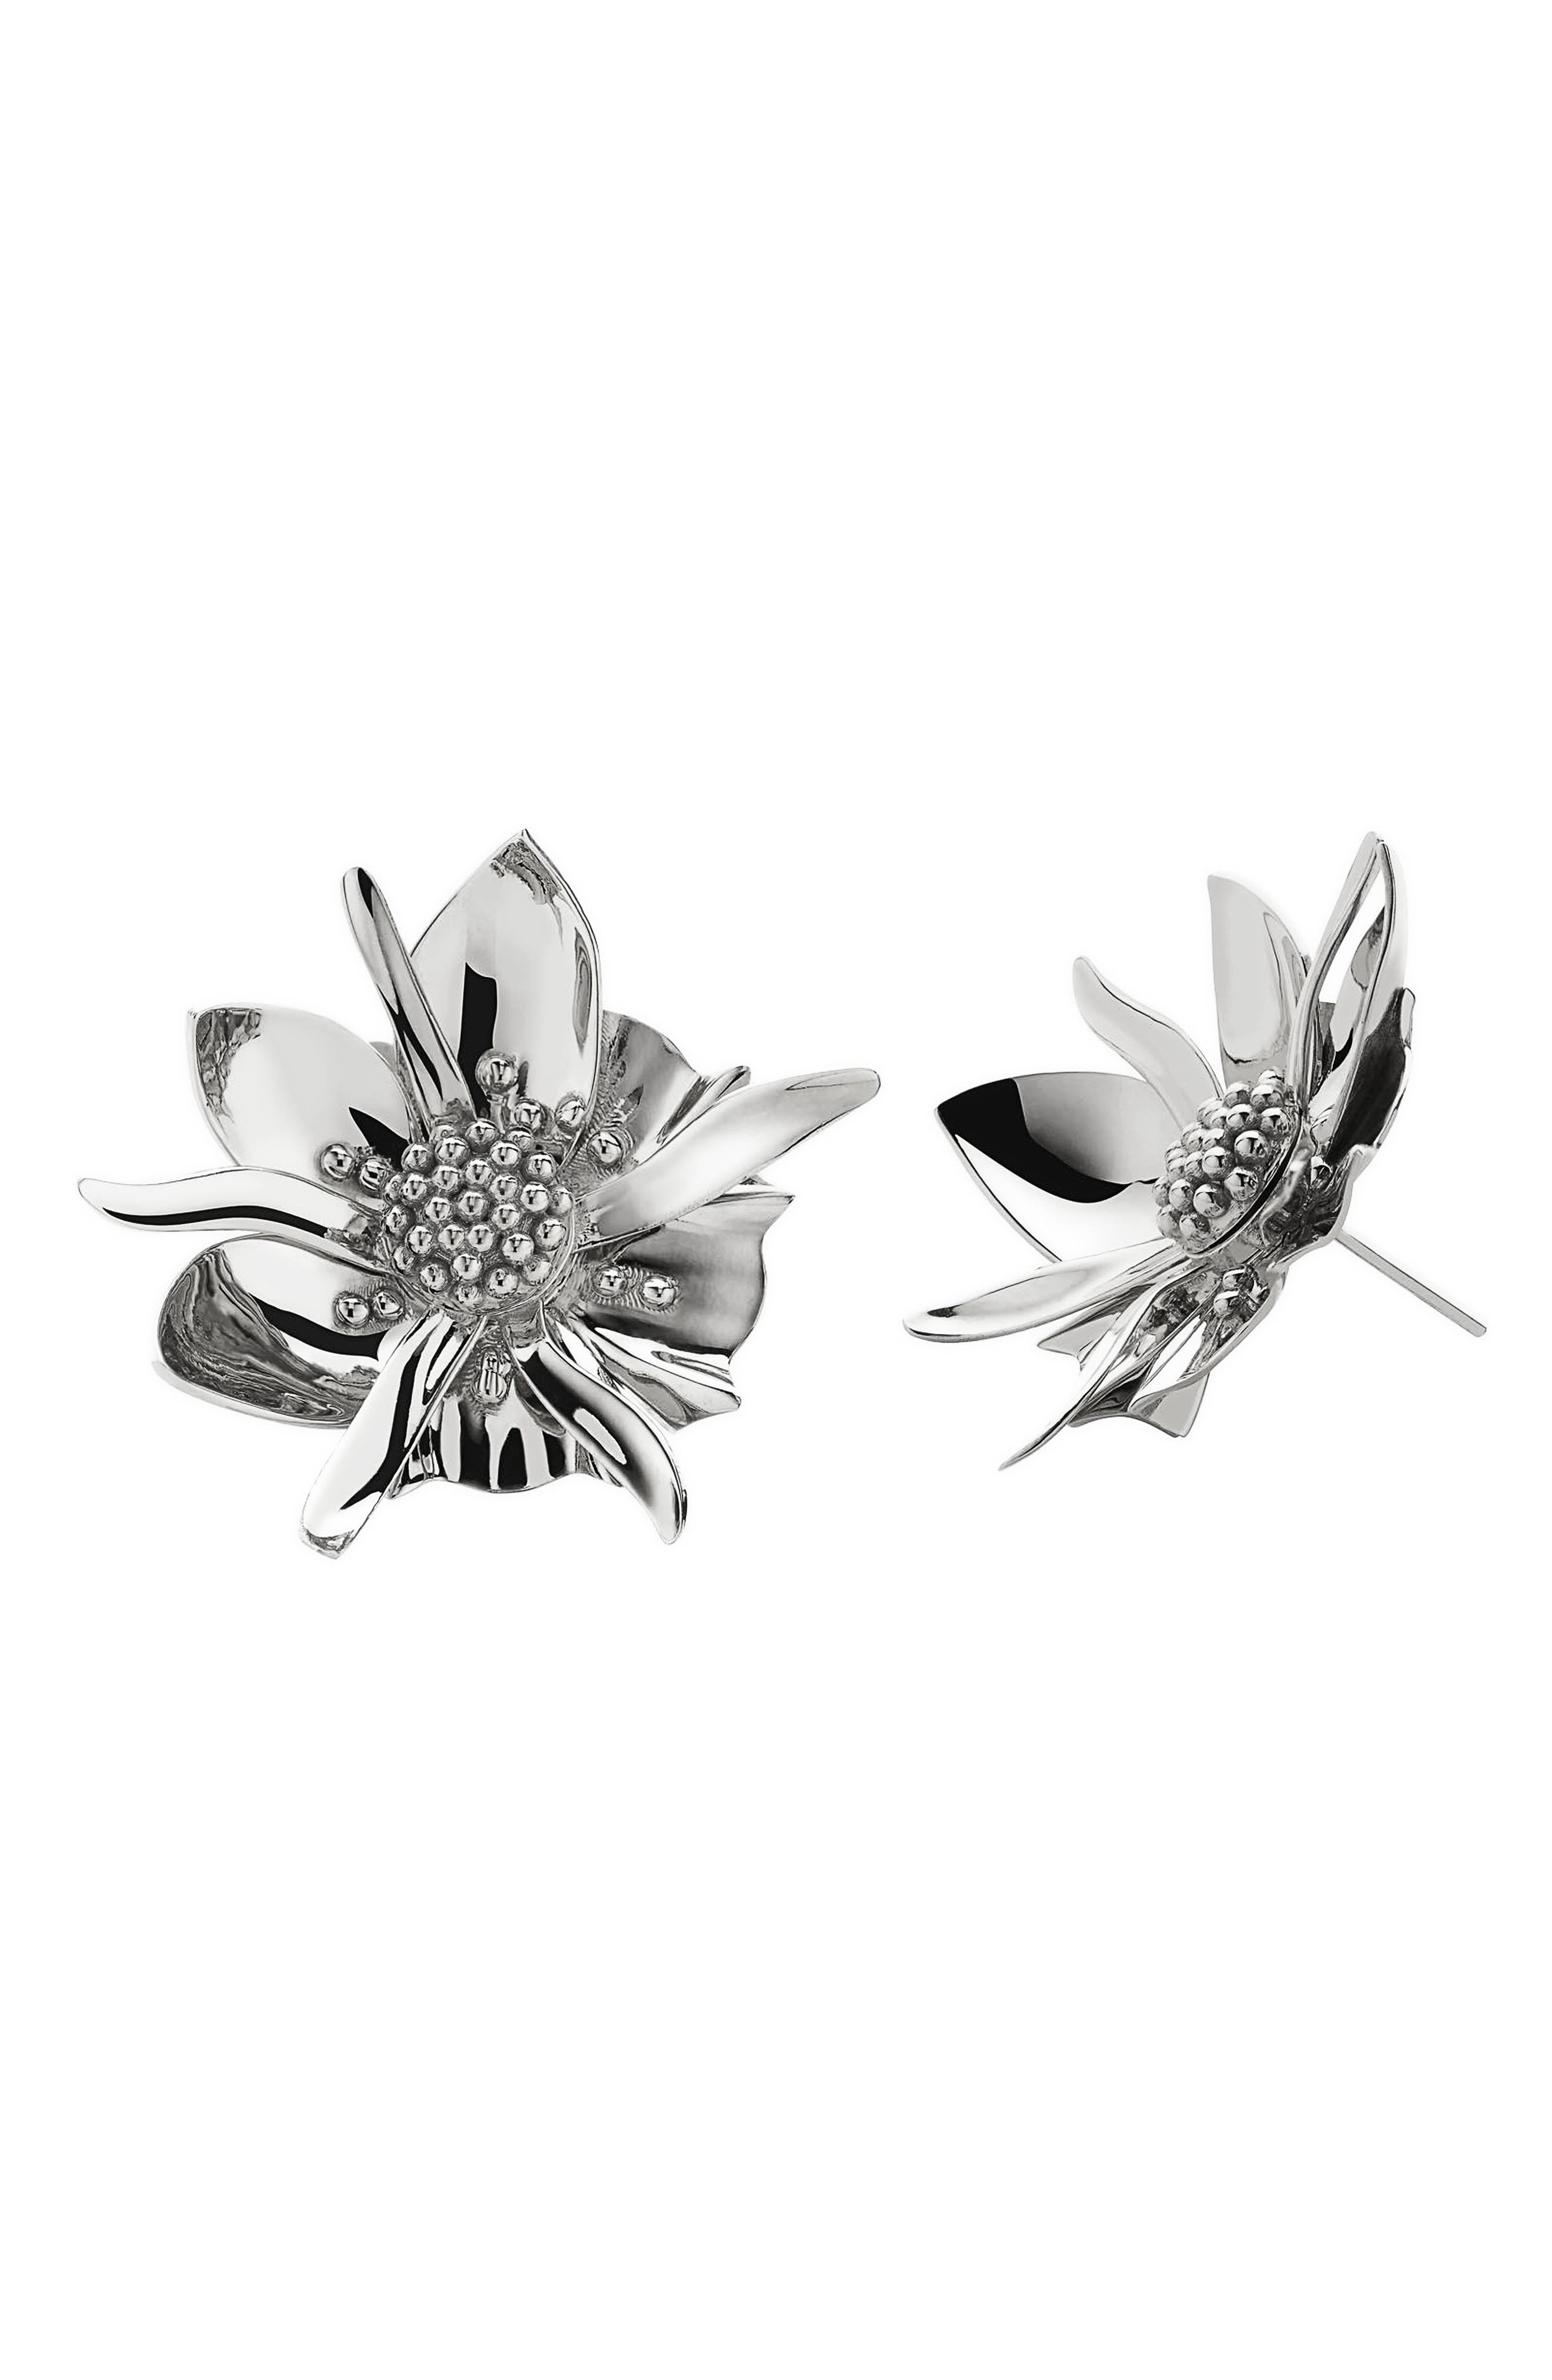 Large Wildflower Stud Earrings,                         Main,                         color, Sterling Silver